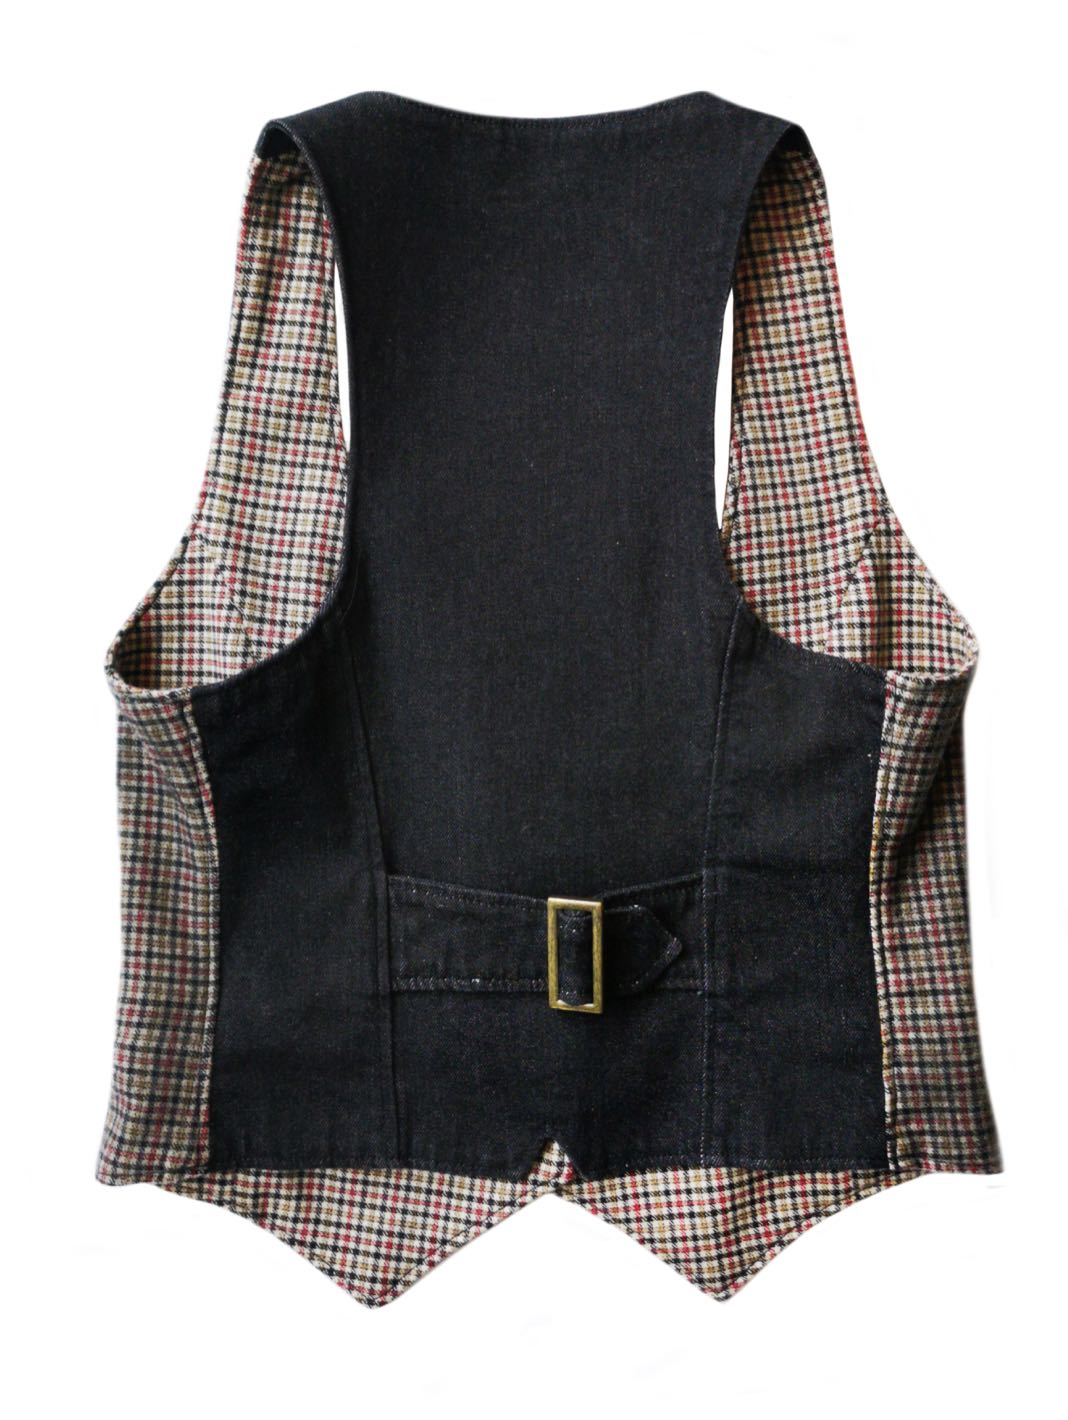 Jimmy Wool Vest - The Bobby Boga